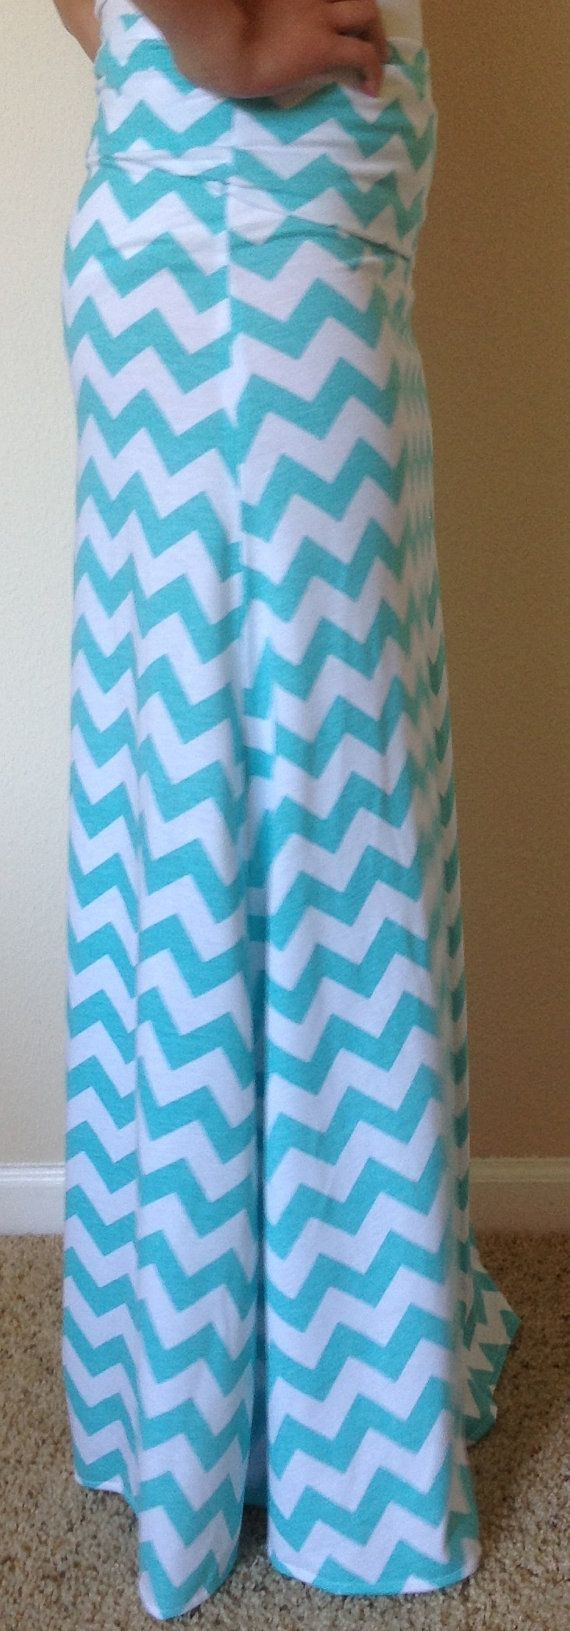 Tiffany blue and white Chevron maxi skirt summer by SeasonsApparel, $45.00